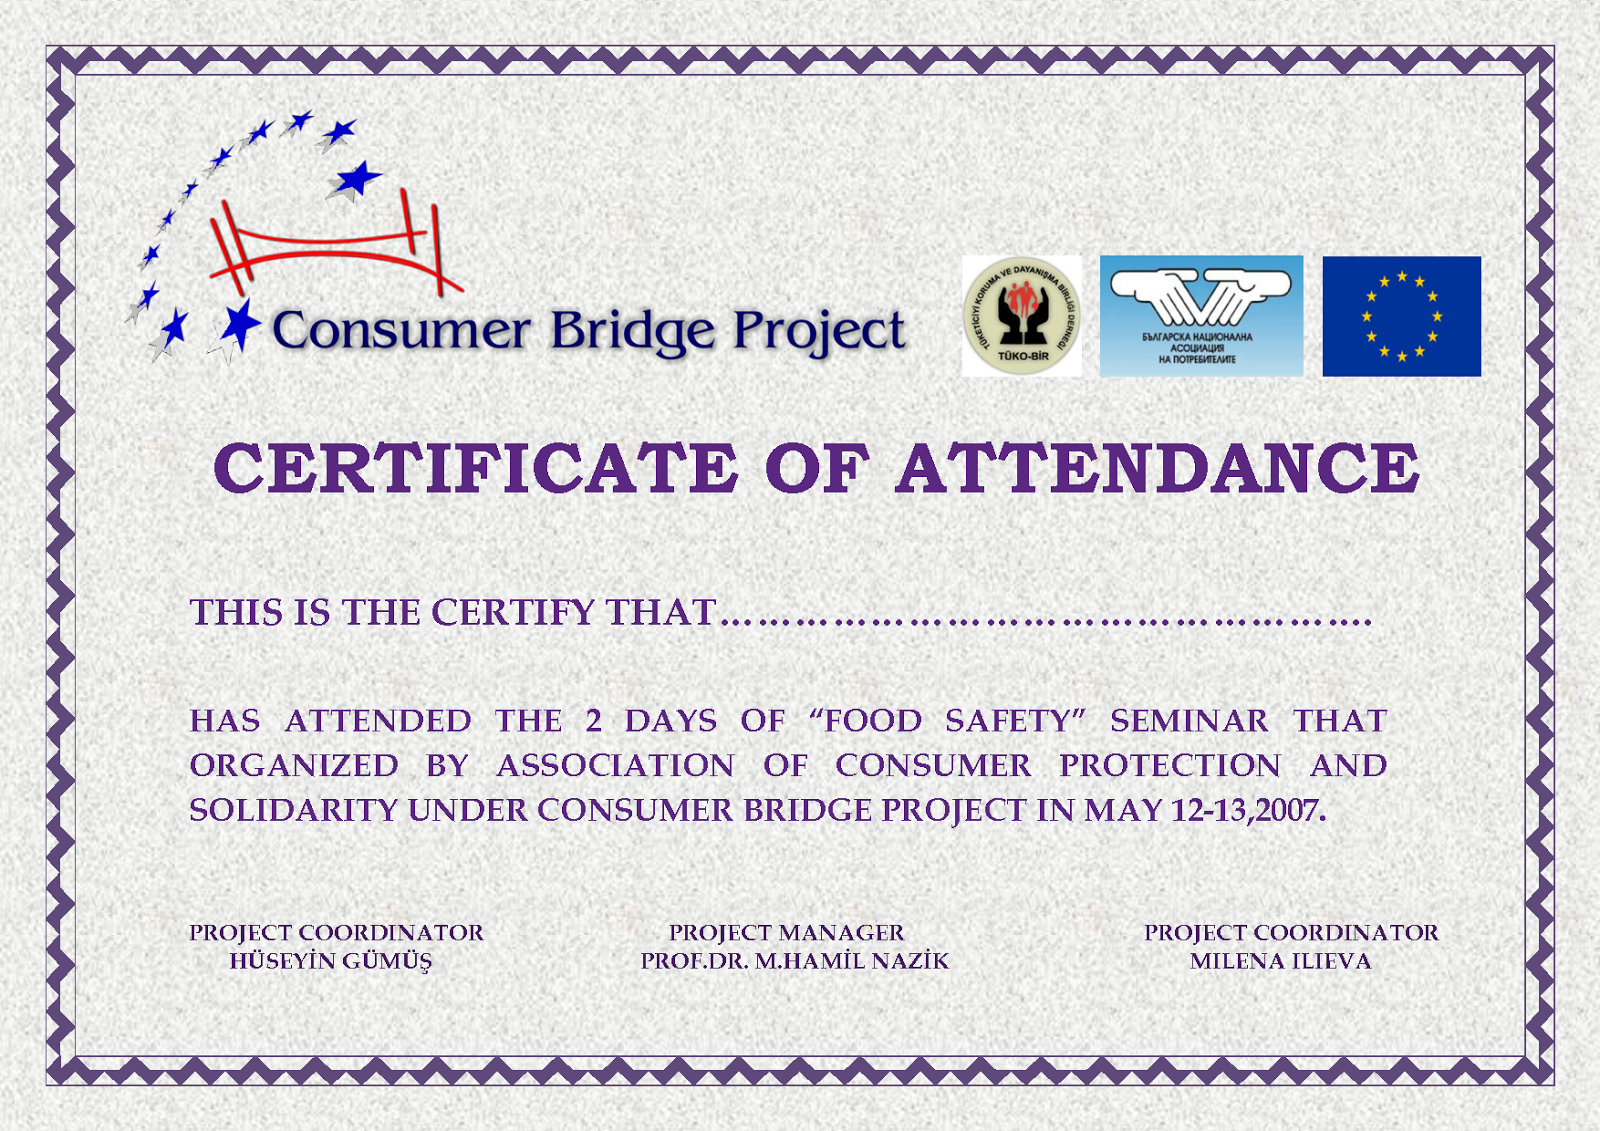 Perfect Attendance Certificate Templates Free Download DTemplates – Award Templates Word